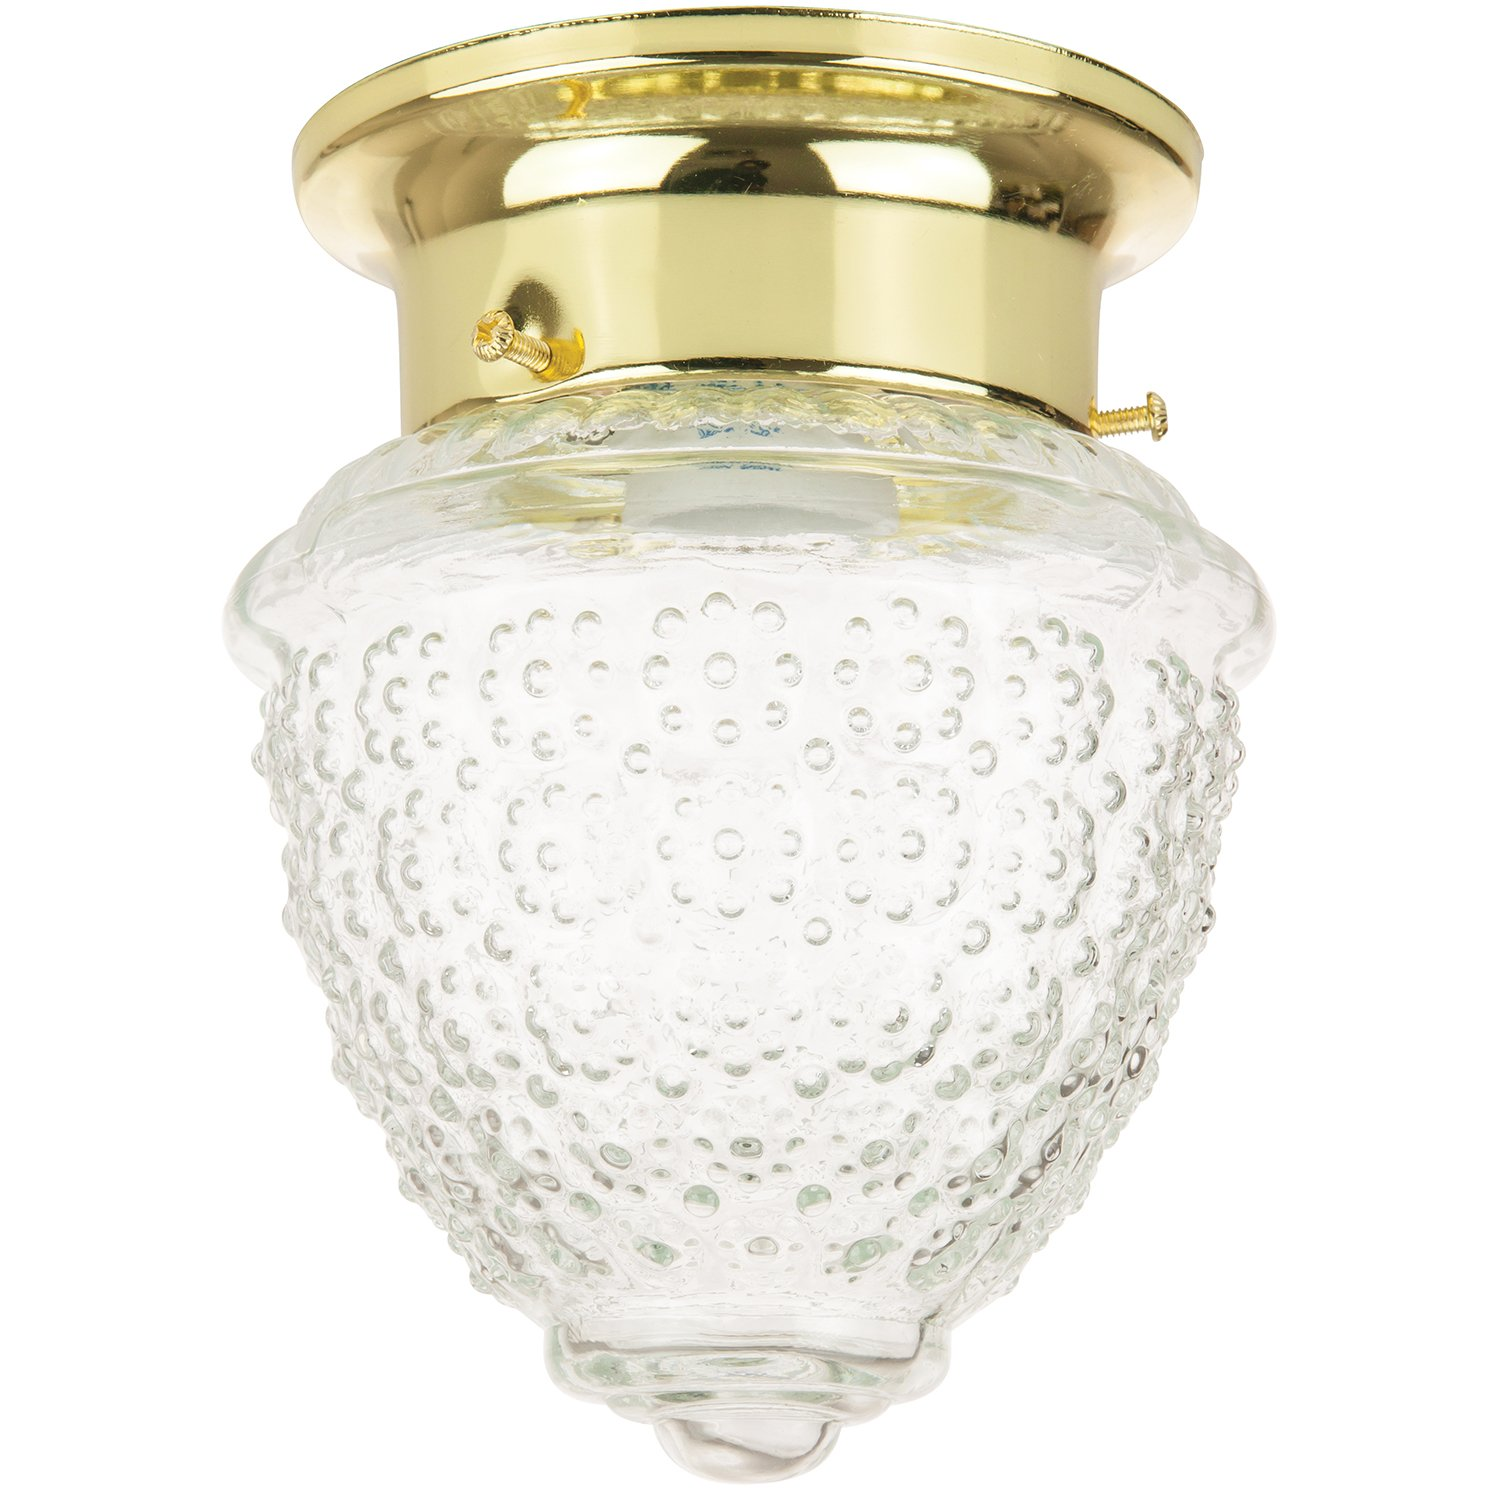 Sunlite pin3 4 3 5 inch pineapple ceiling fixture polished brass